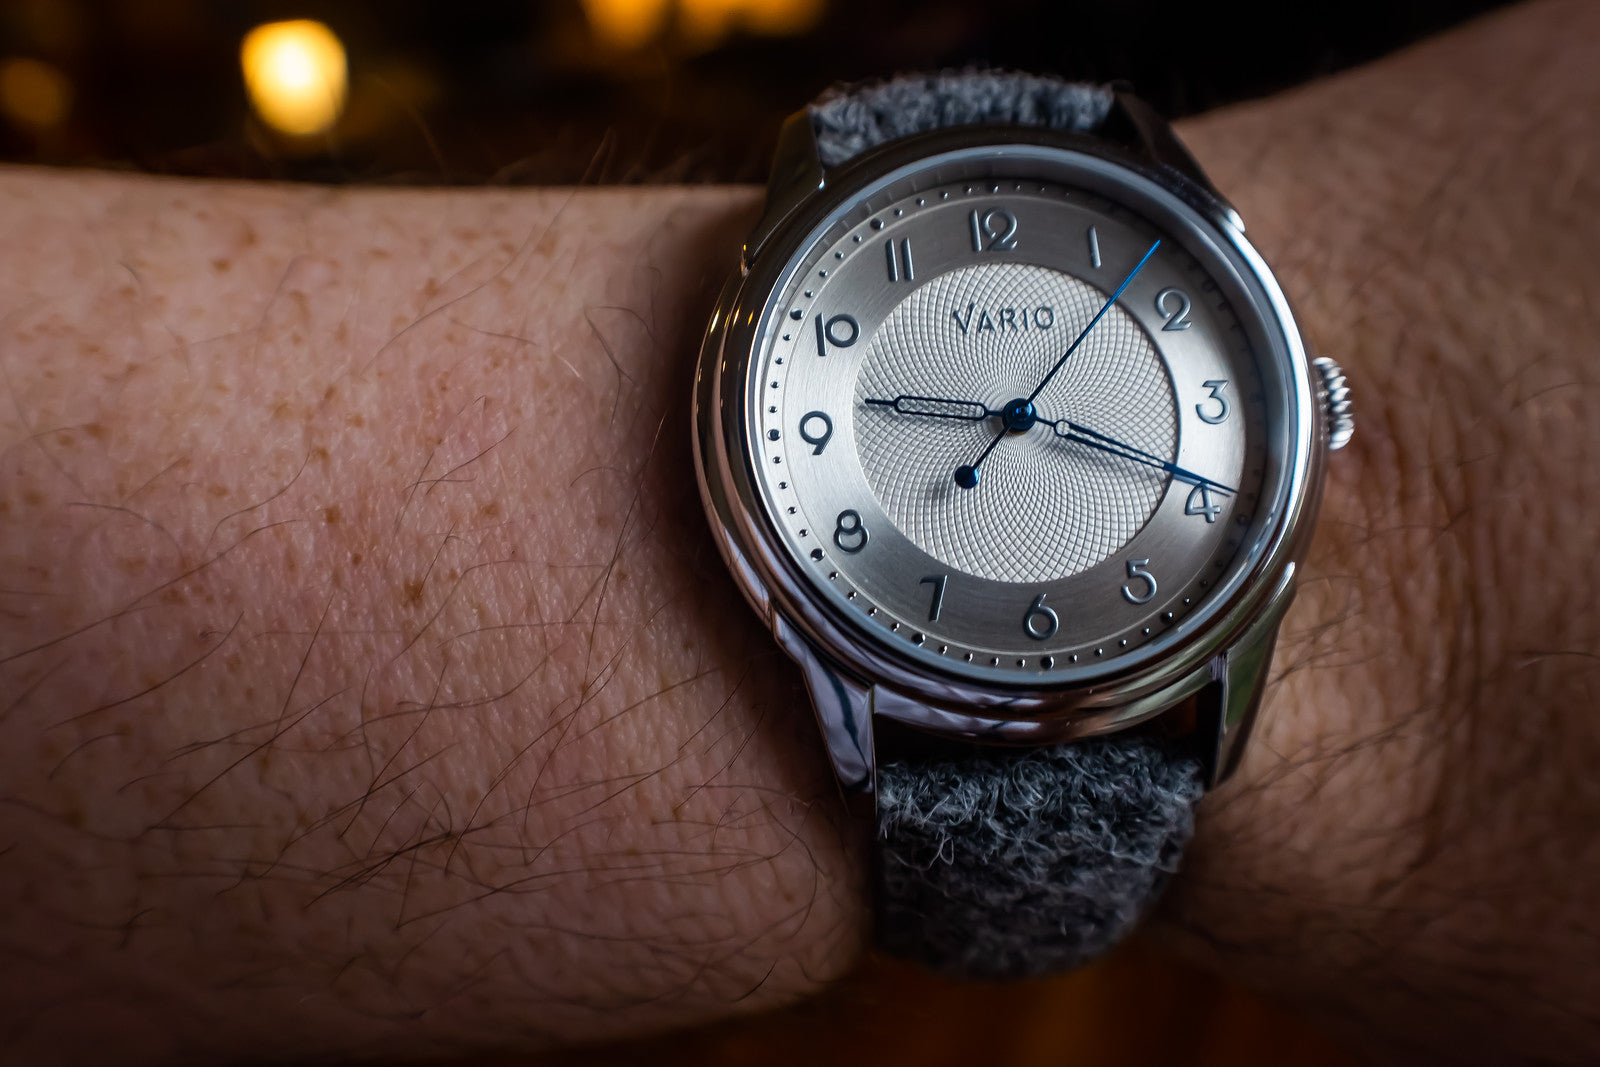 vario art deco watch on wrist